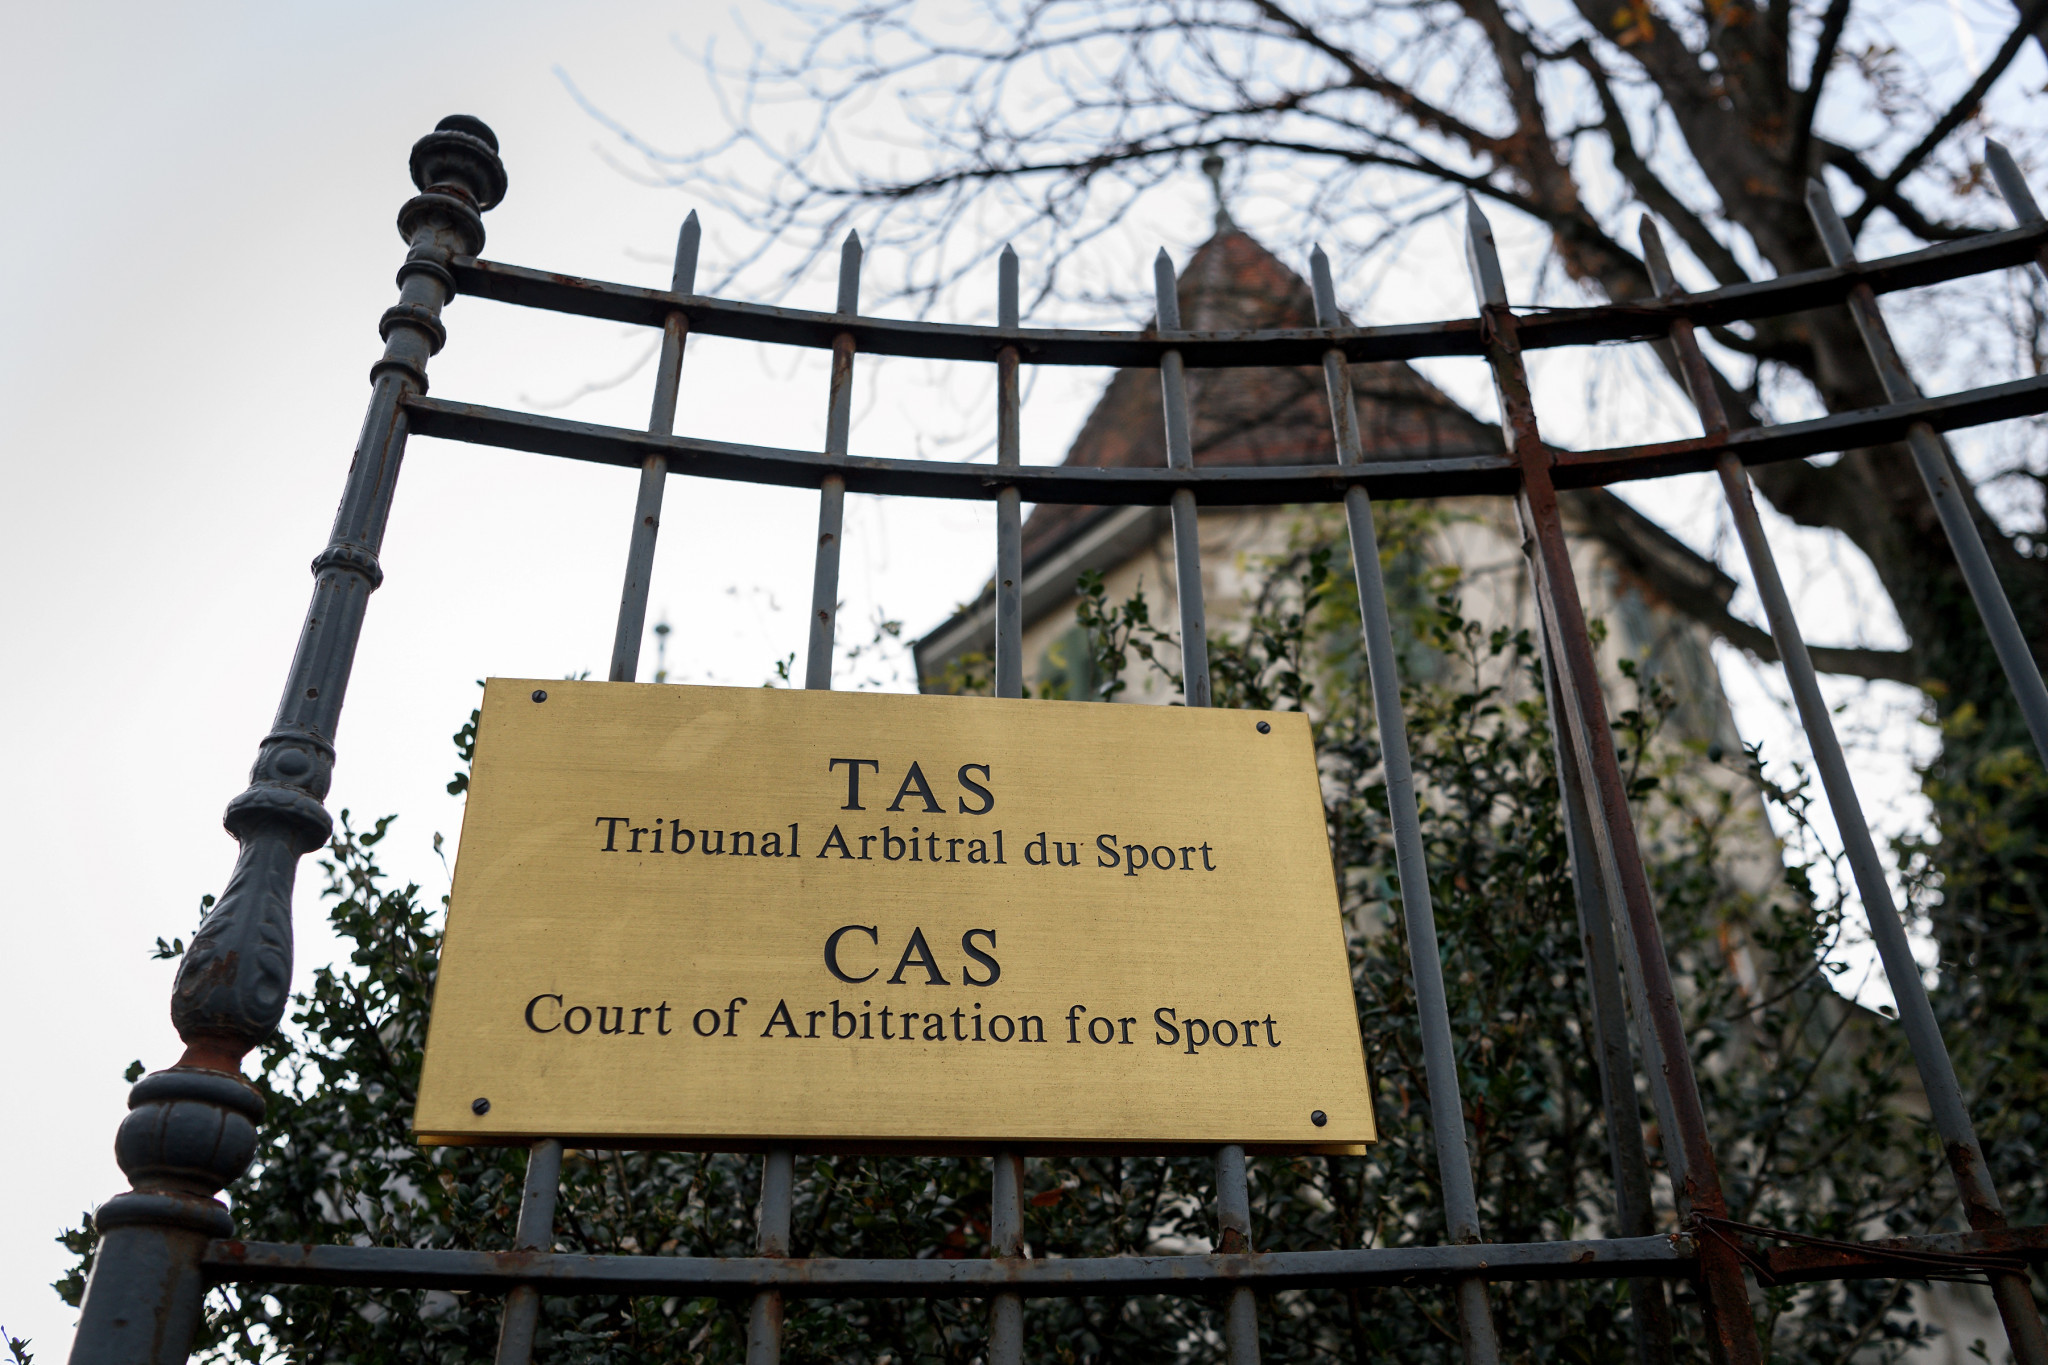 There are undoubtedly some elements of the Court of Arbitration for Sport which could be reformed, although you could say the same about the IOC ©Getty Images